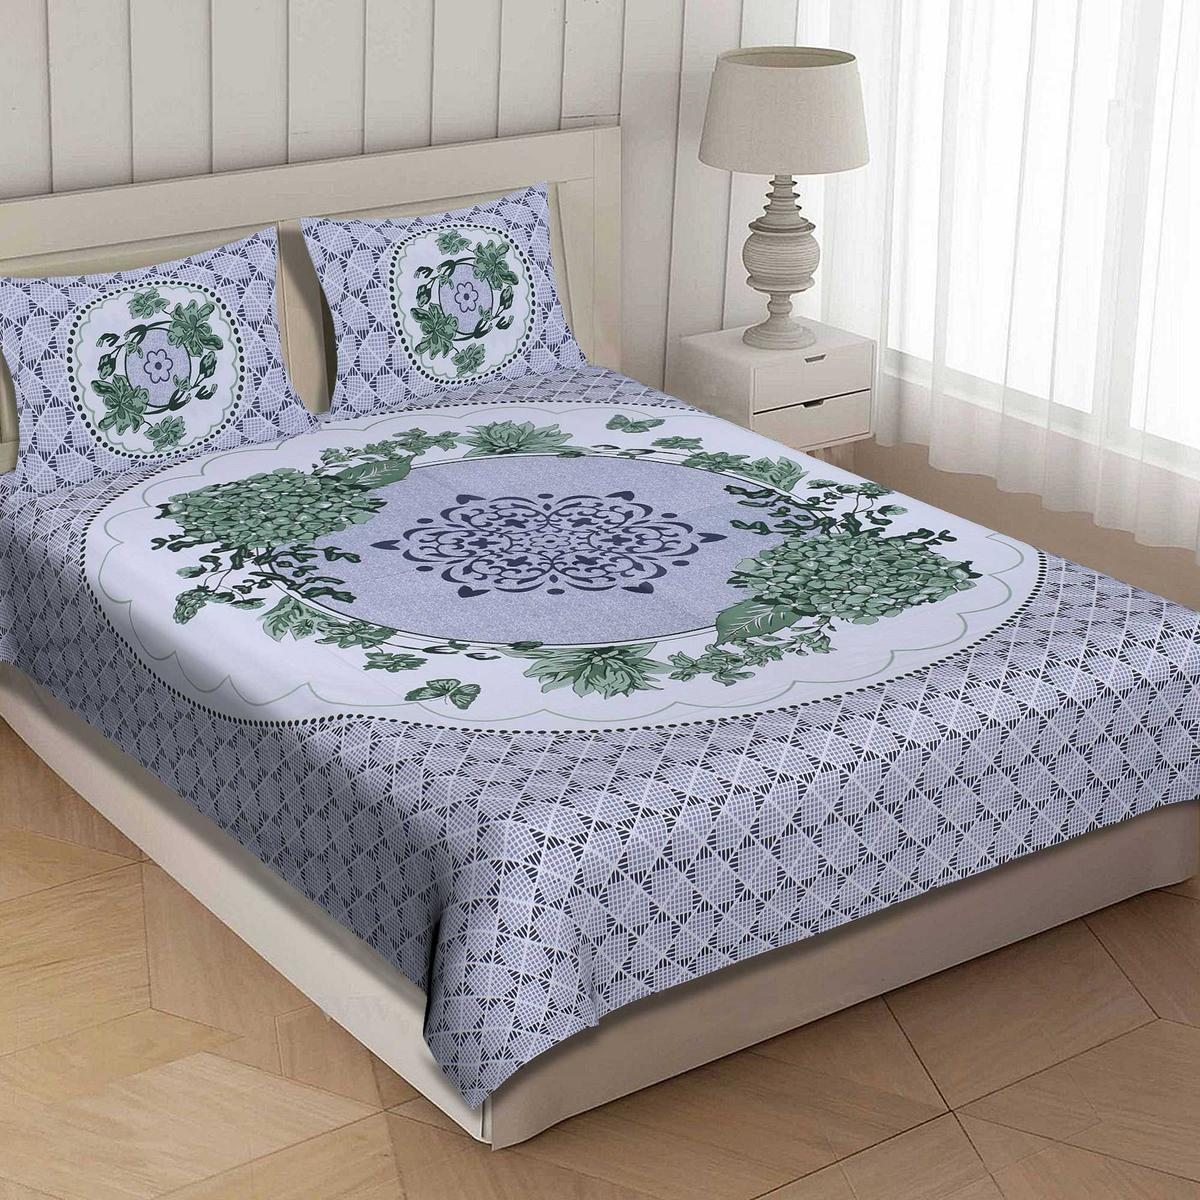 AJ Home - Green Colored Printed Cotton King Size Bedsheet With 2 Pillow Cover